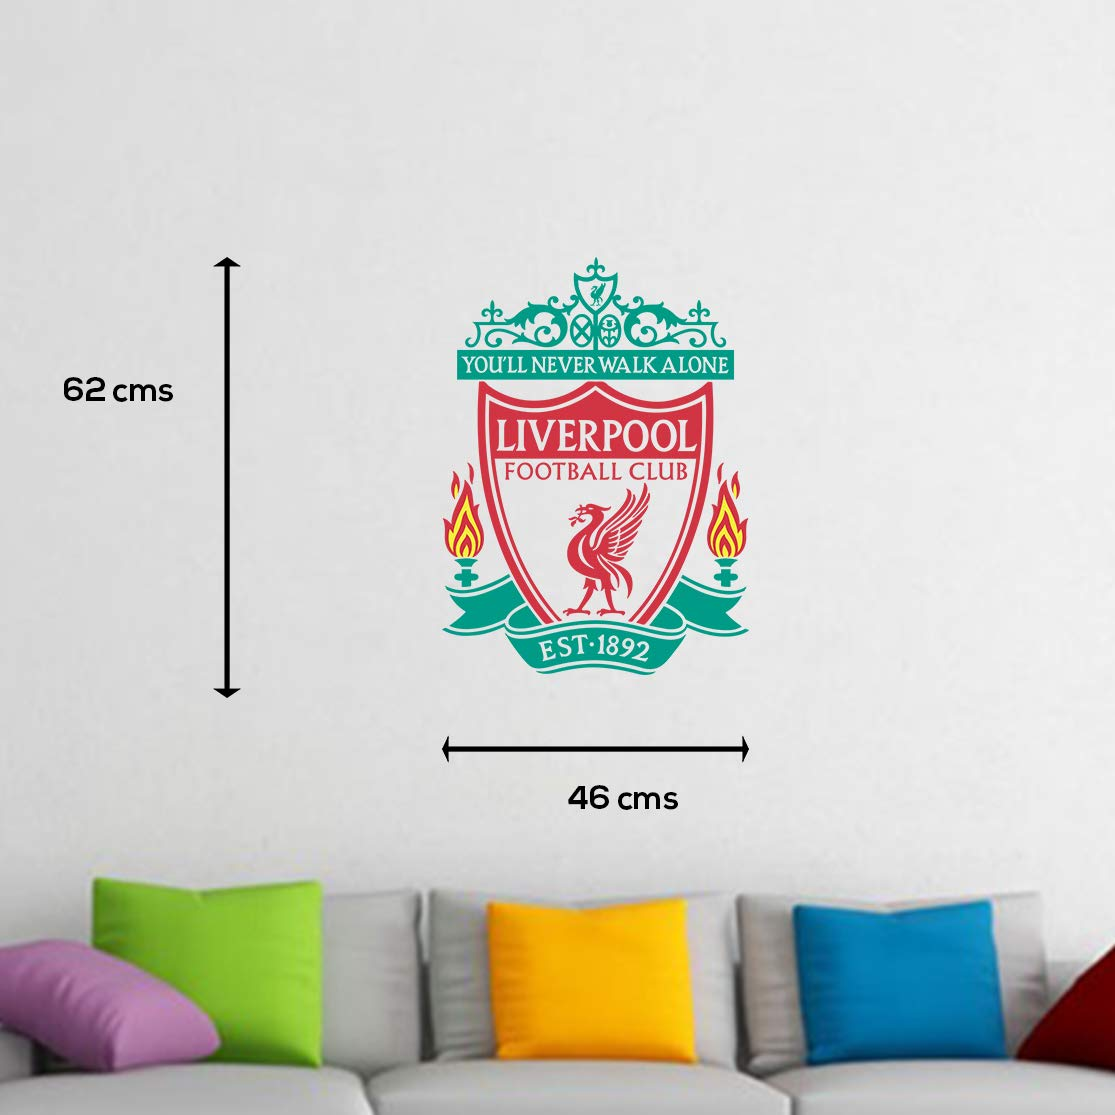 Buy doodad liverpool football wall sticker for boys room online at low prices in india amazon in